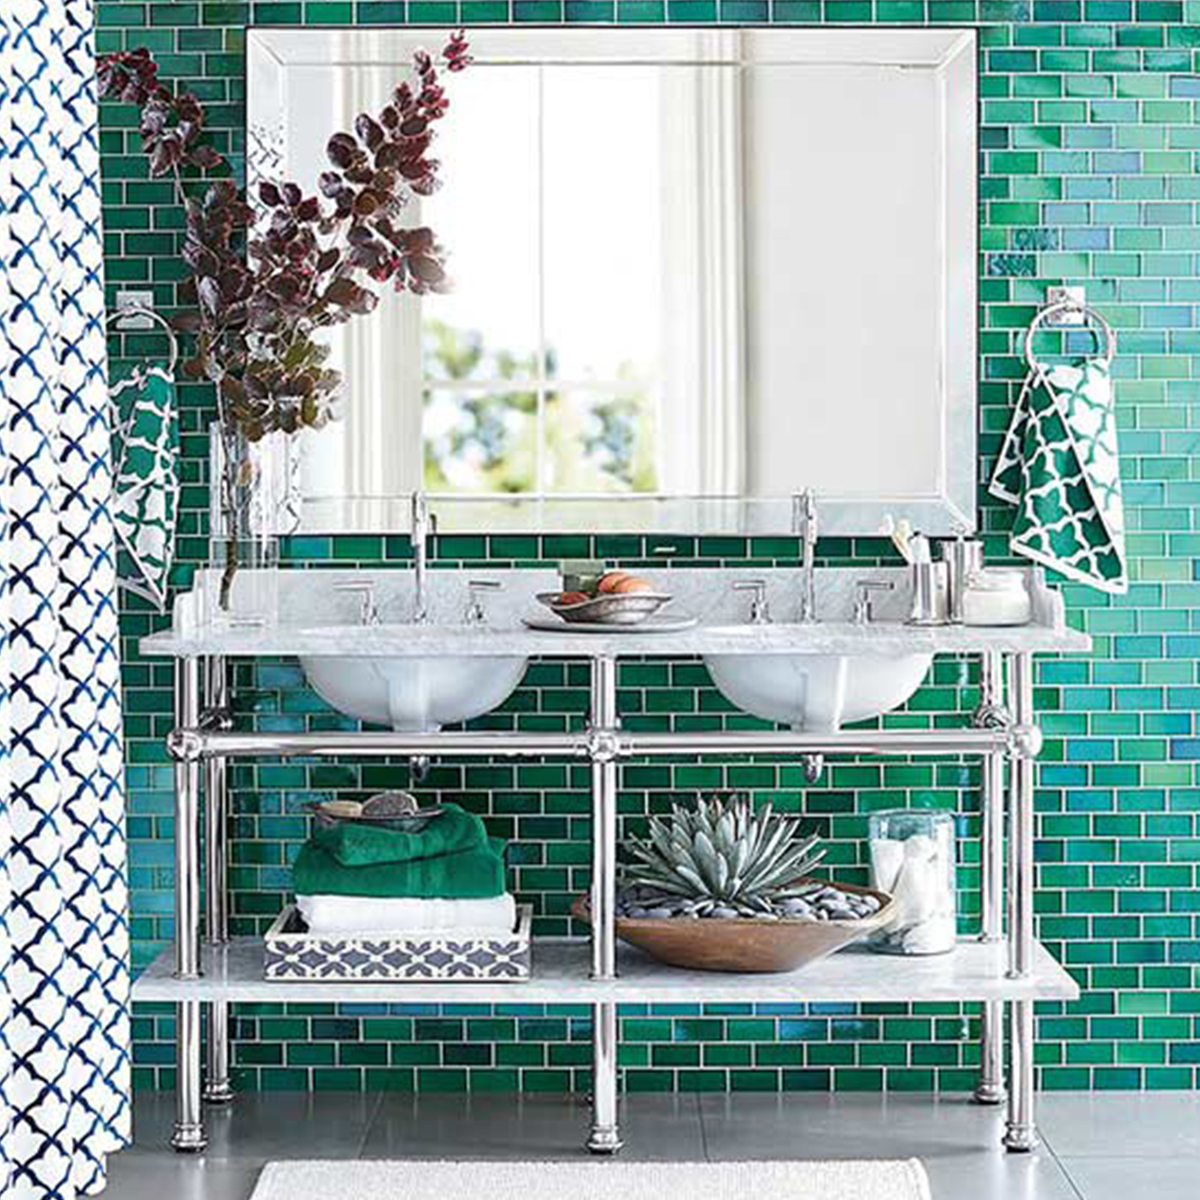 Double vanity with open shelving and exposed pipes photo